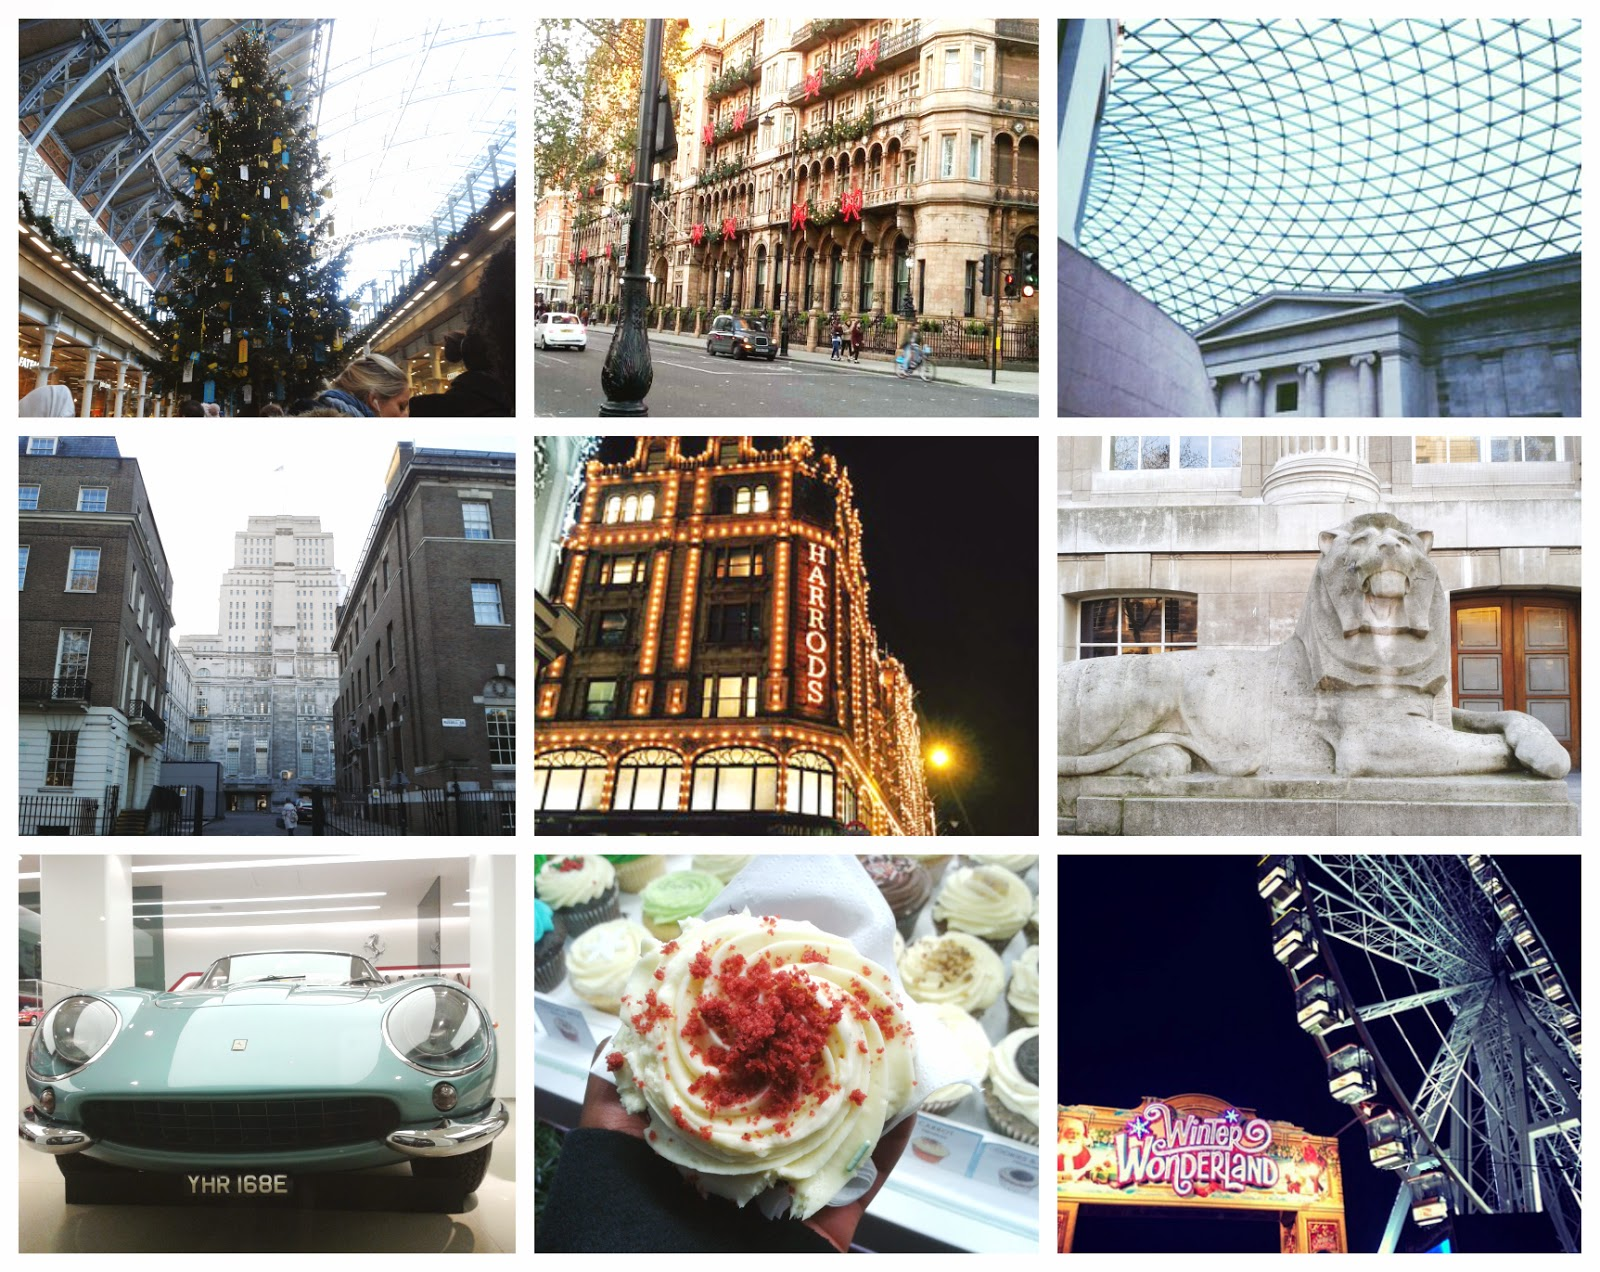 A collage of festive displays around London